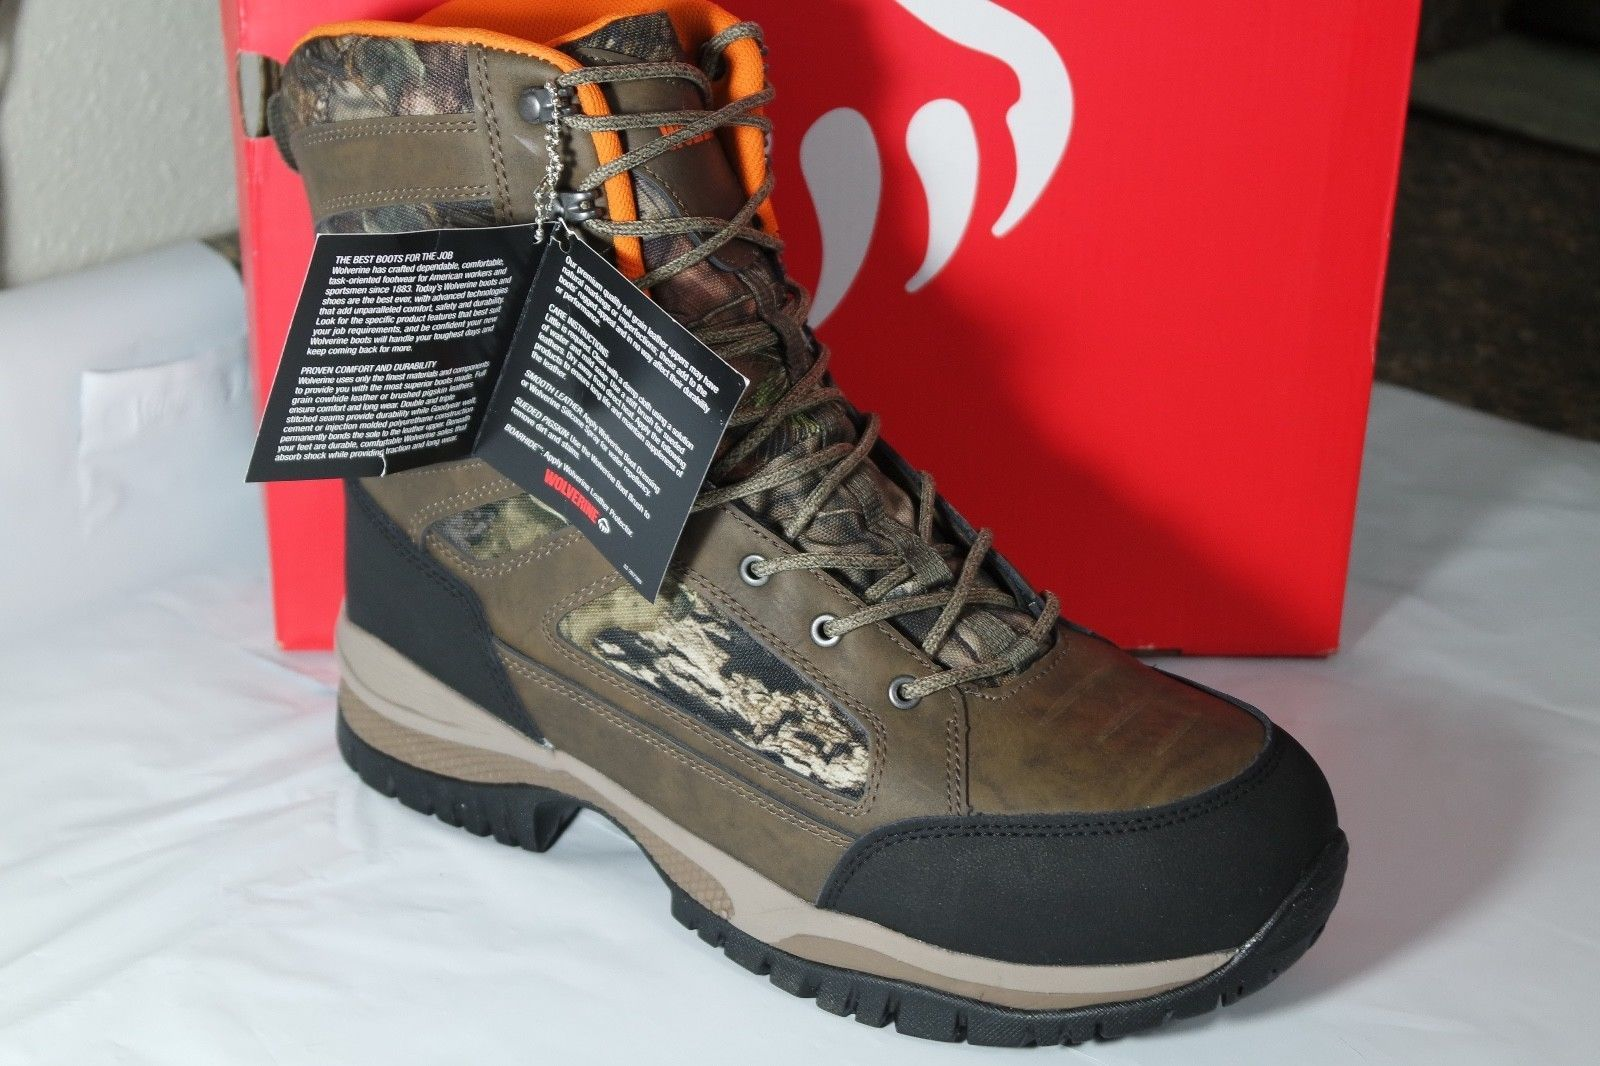 68a52373c3f Wolverine Rocket Hi Men's Outdoor Camouflage and 50 similar items